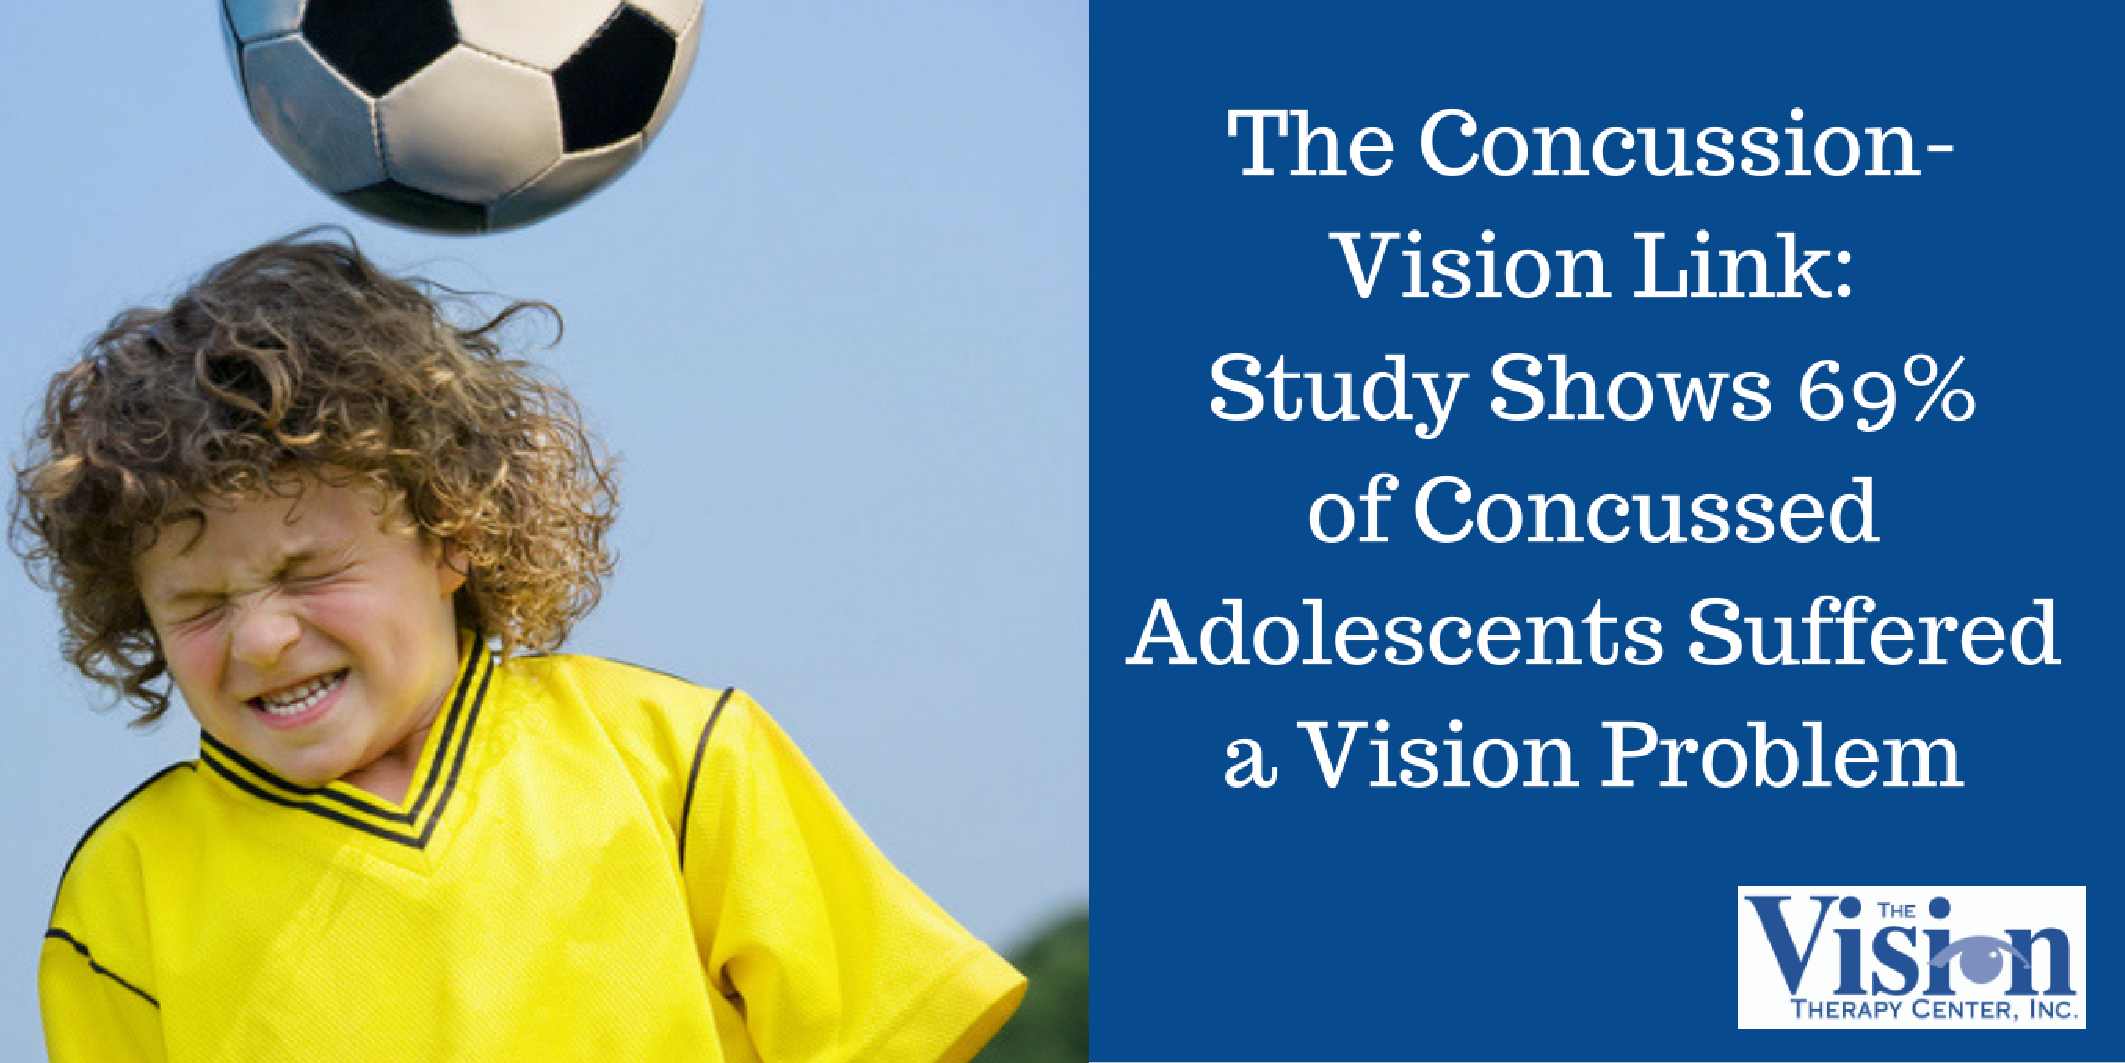 The Concussion-Vision Link: Study Shows 69% of Concussed Adolescents Suffered a Vision Problem